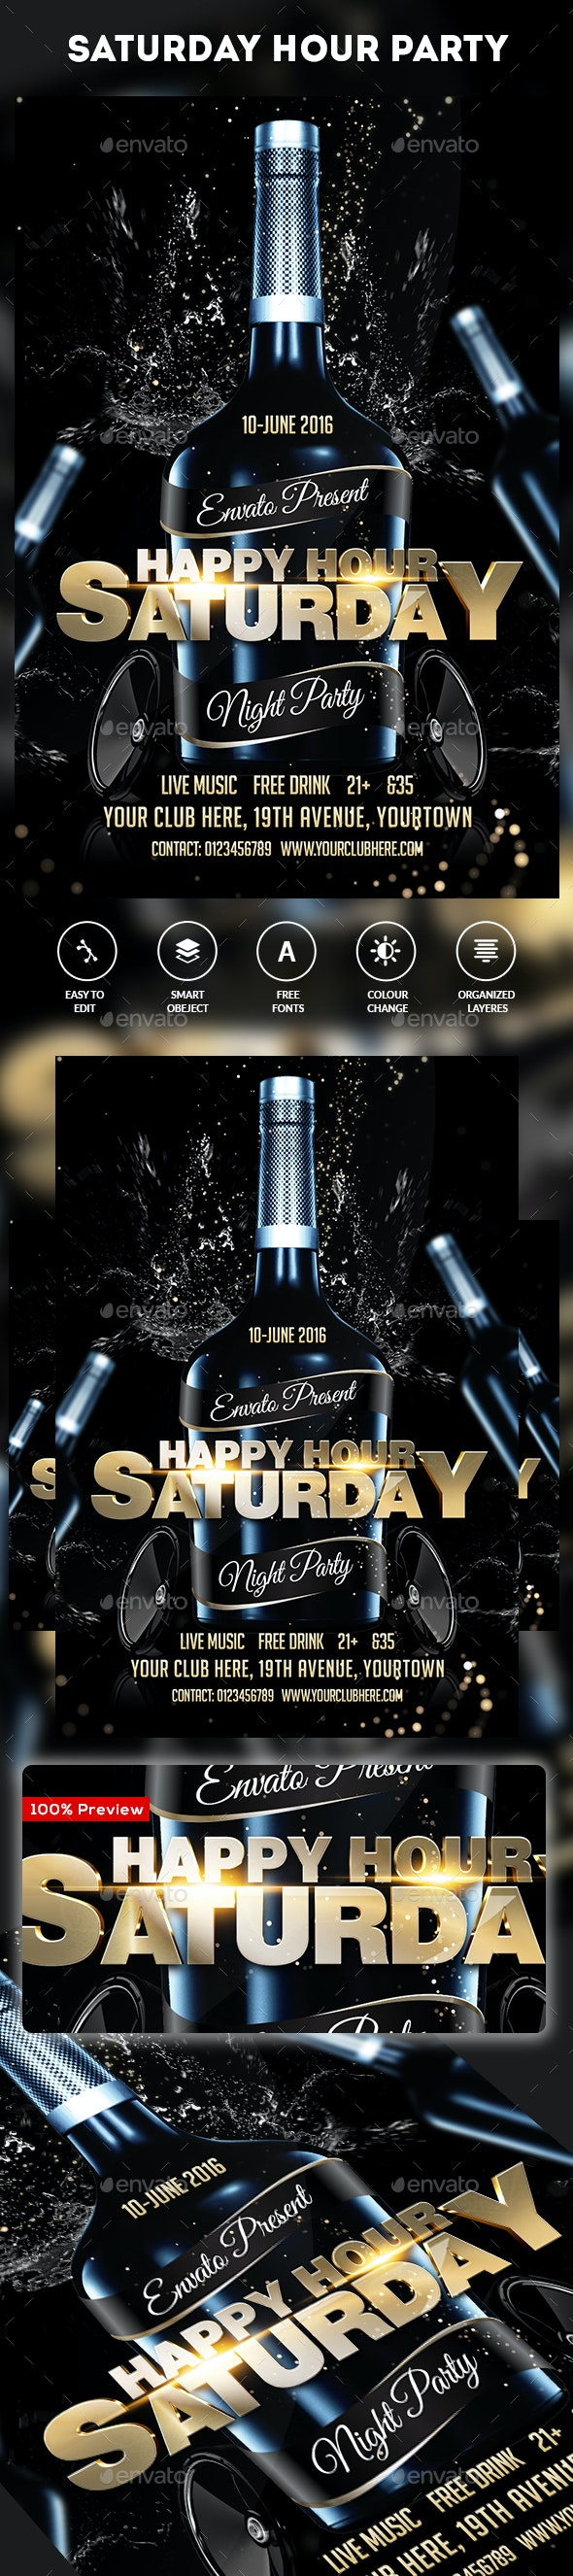 Saturday Weekend Party Flyer - Clubs & Parties Events